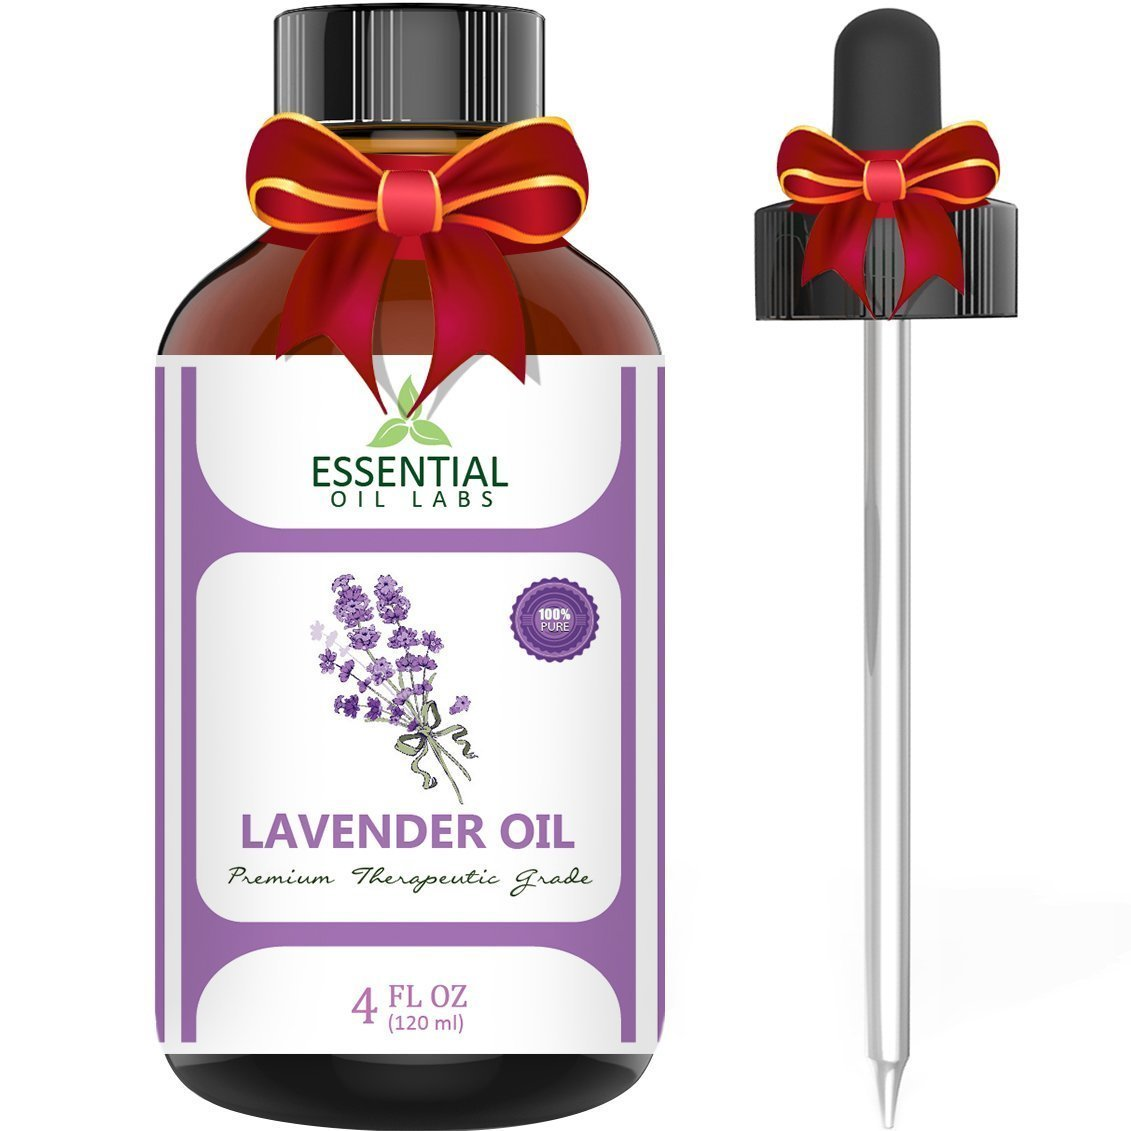 Lavender Essential Oil - Highest Quality Therapeutic Grade Backed by Research - Largest 4 Oz Bottle with Premium Glass Dropper - 100% Pure and Natural - Guaranteed Results - Essential Labs by Essential Oil Labs